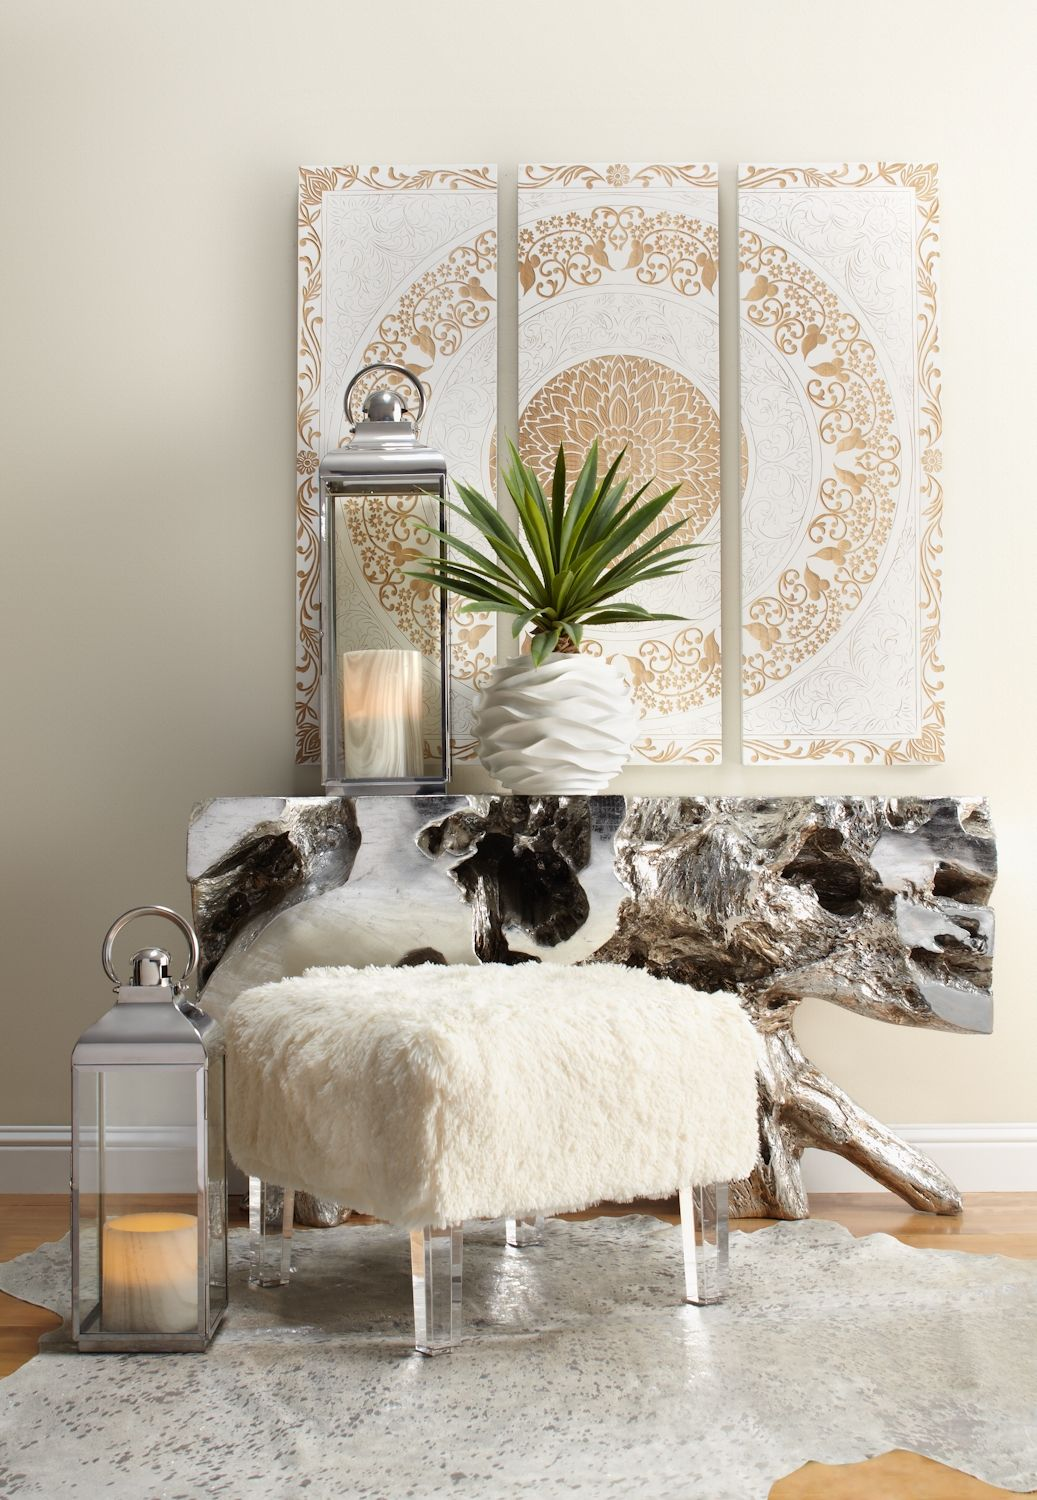 Stylish Home Decor \u0026 Chic Furniture At Affordable Prices & Welcome guests in style with a Naturally Luxe look. | Zgallerie ...